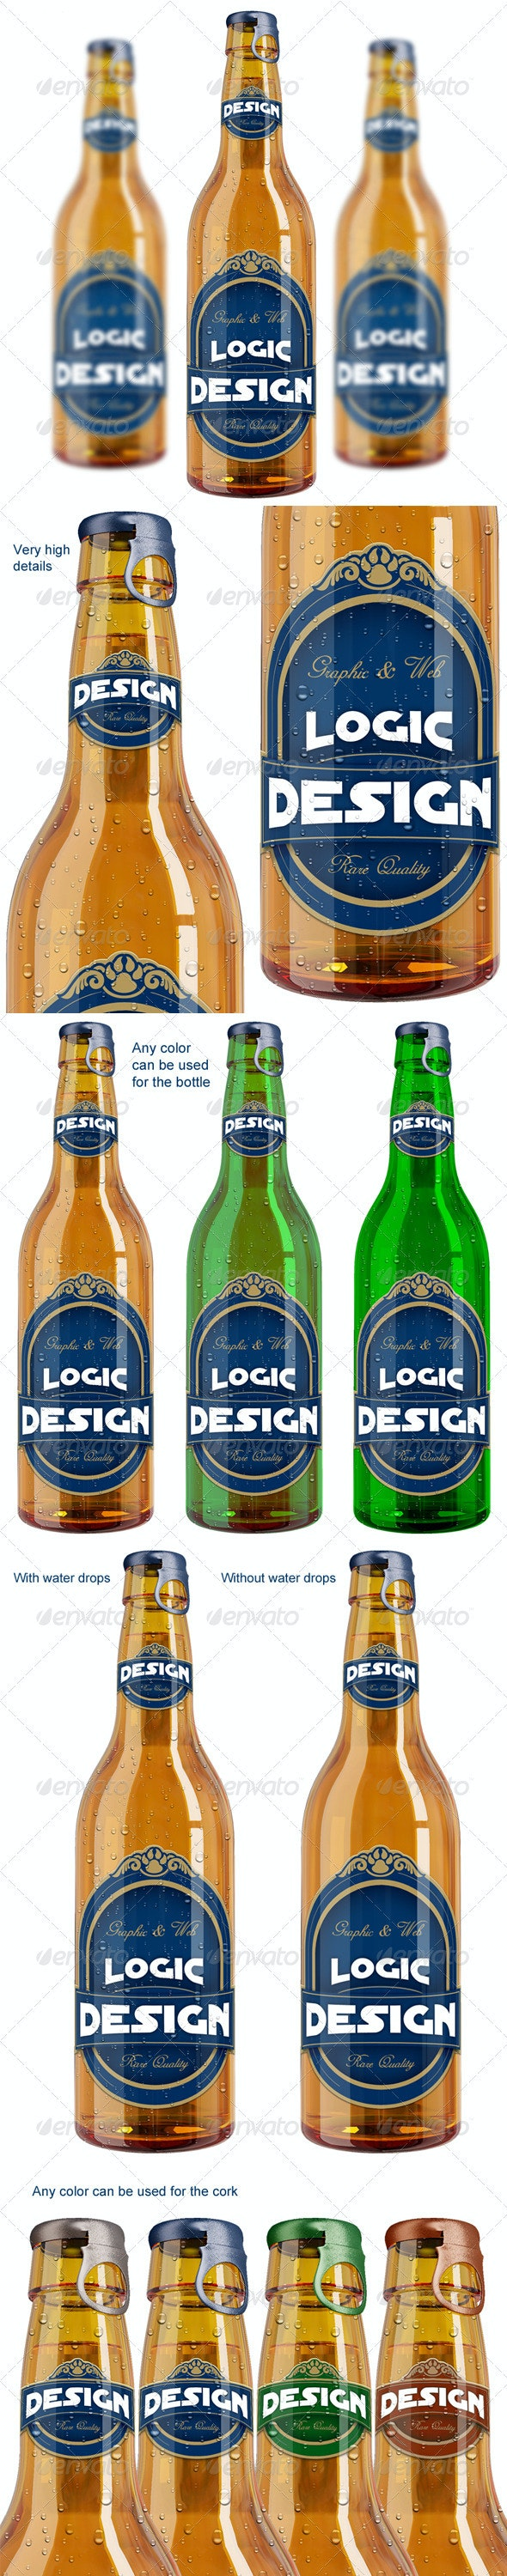 Bottle Beer Mock Up - Food and Drink Packaging